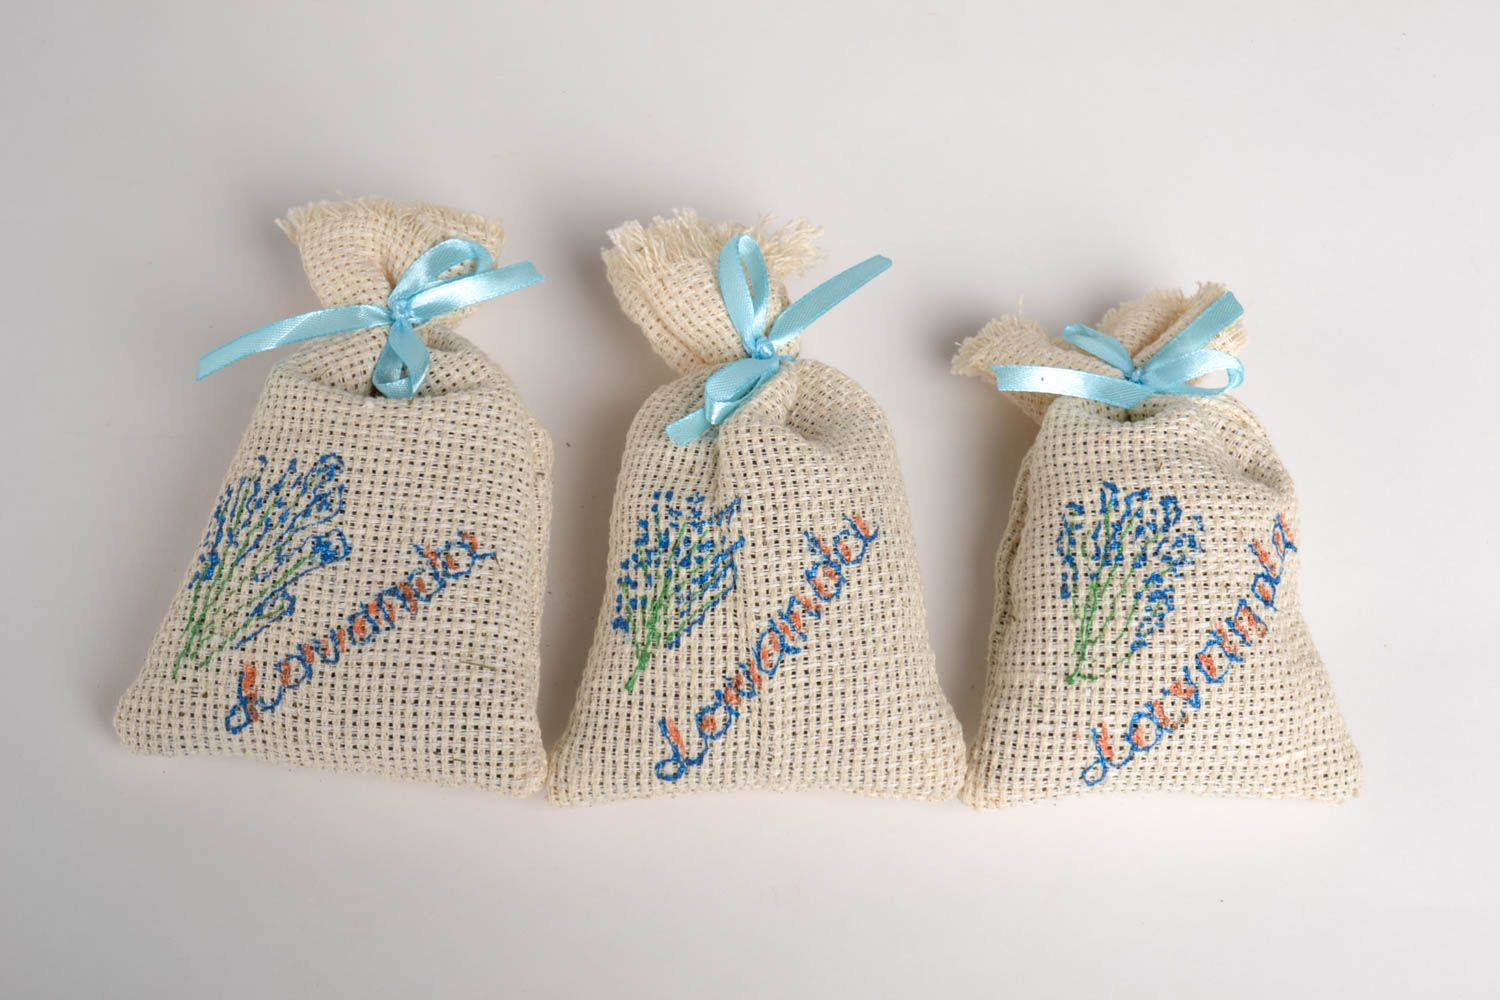 Sachet pillows handmade lavender sachets aroma therapy homemade gifts for friend photo 2